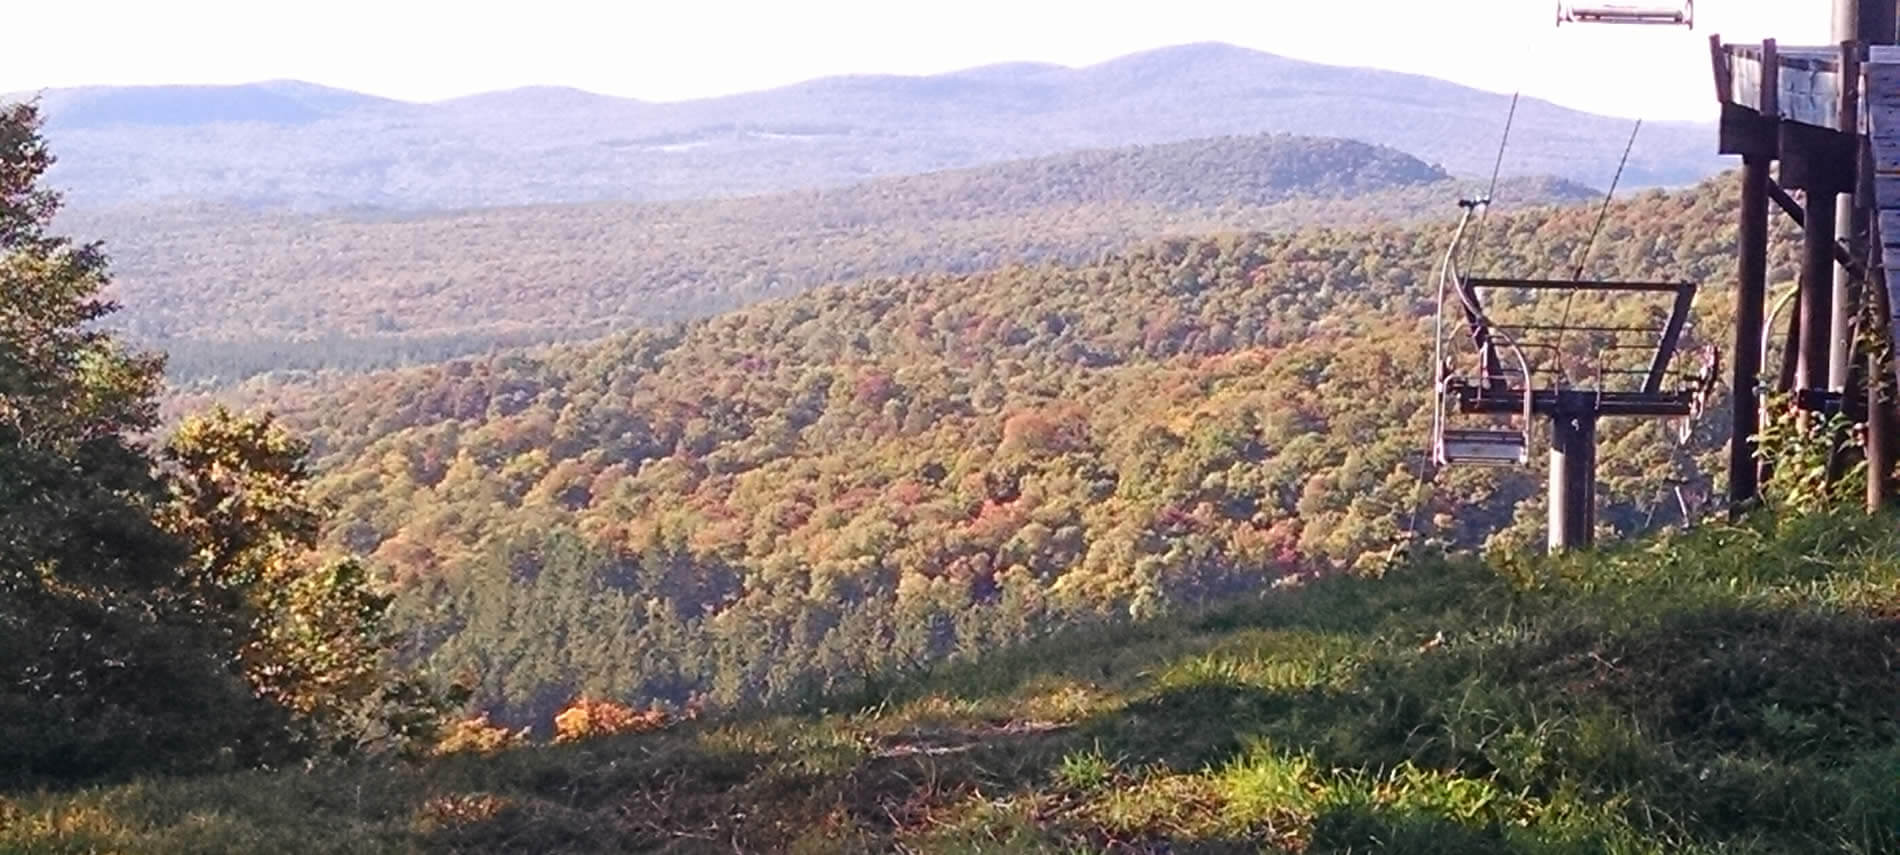 Distant rolling hills and mountains in the autumn covered in shades of yellow, green and red